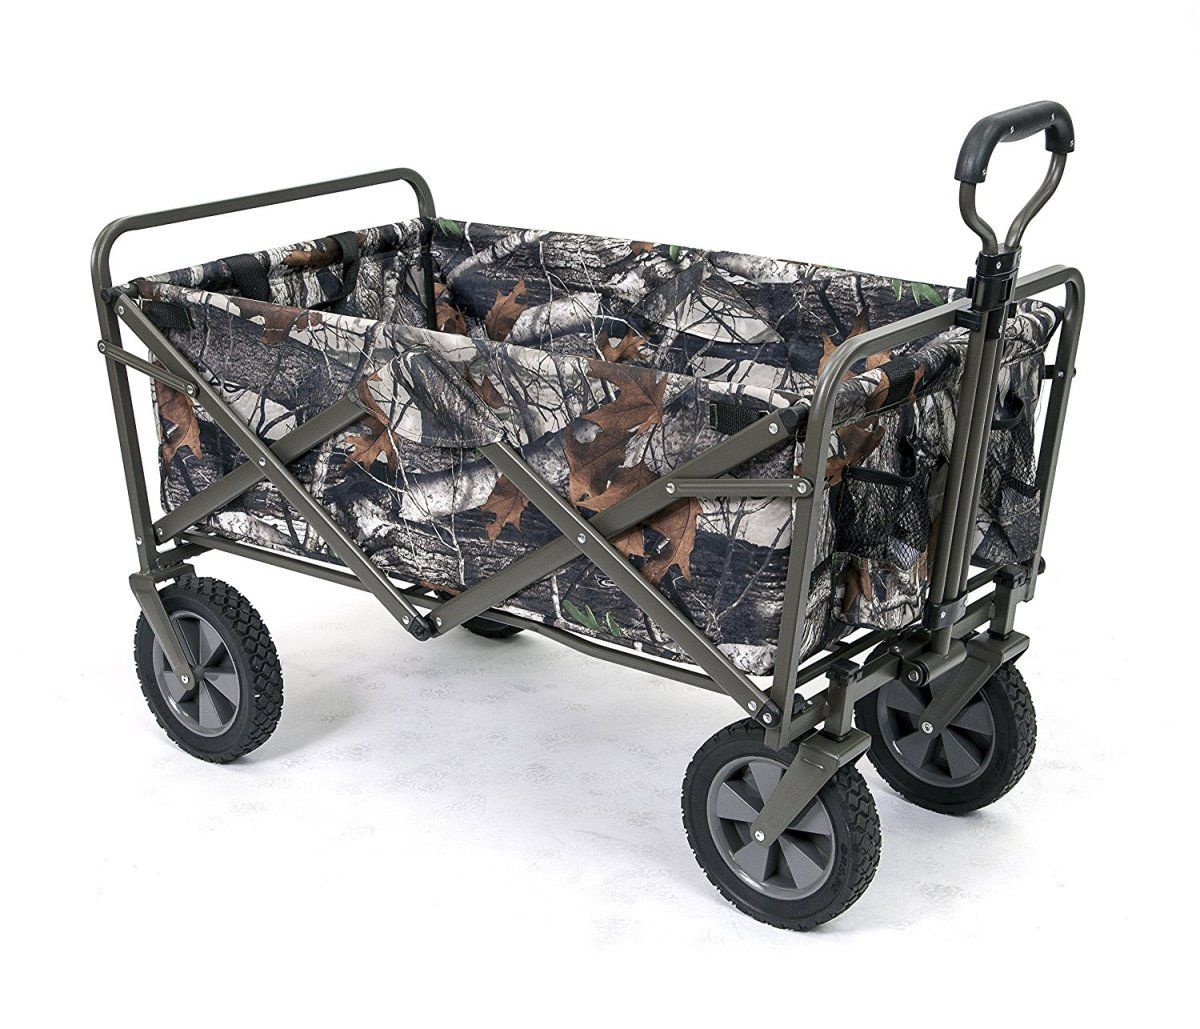 Collapsible Outdoor Utility Wagon Utility wagon, Folding